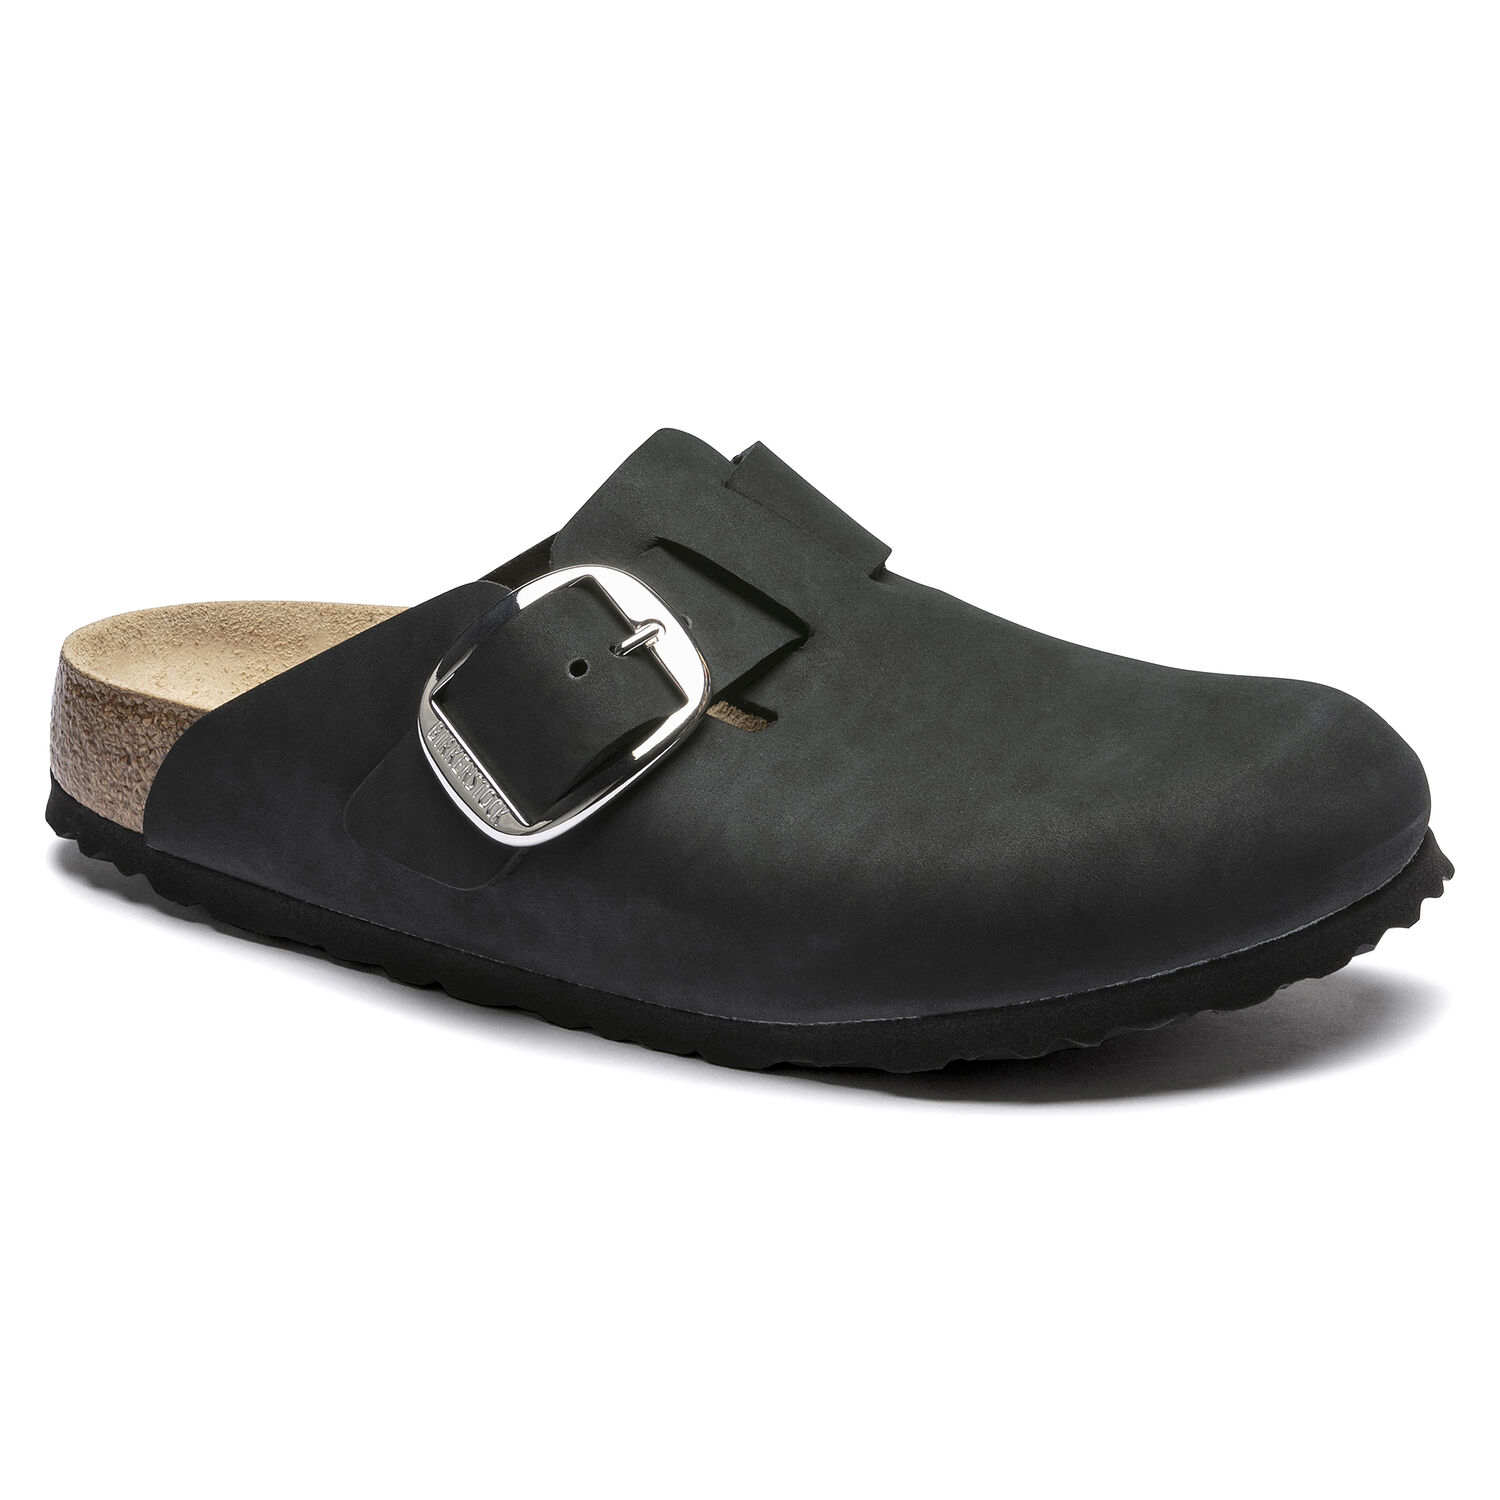 Sabot donna BIRKENSTOCK BOSTON BIG BUCKLE